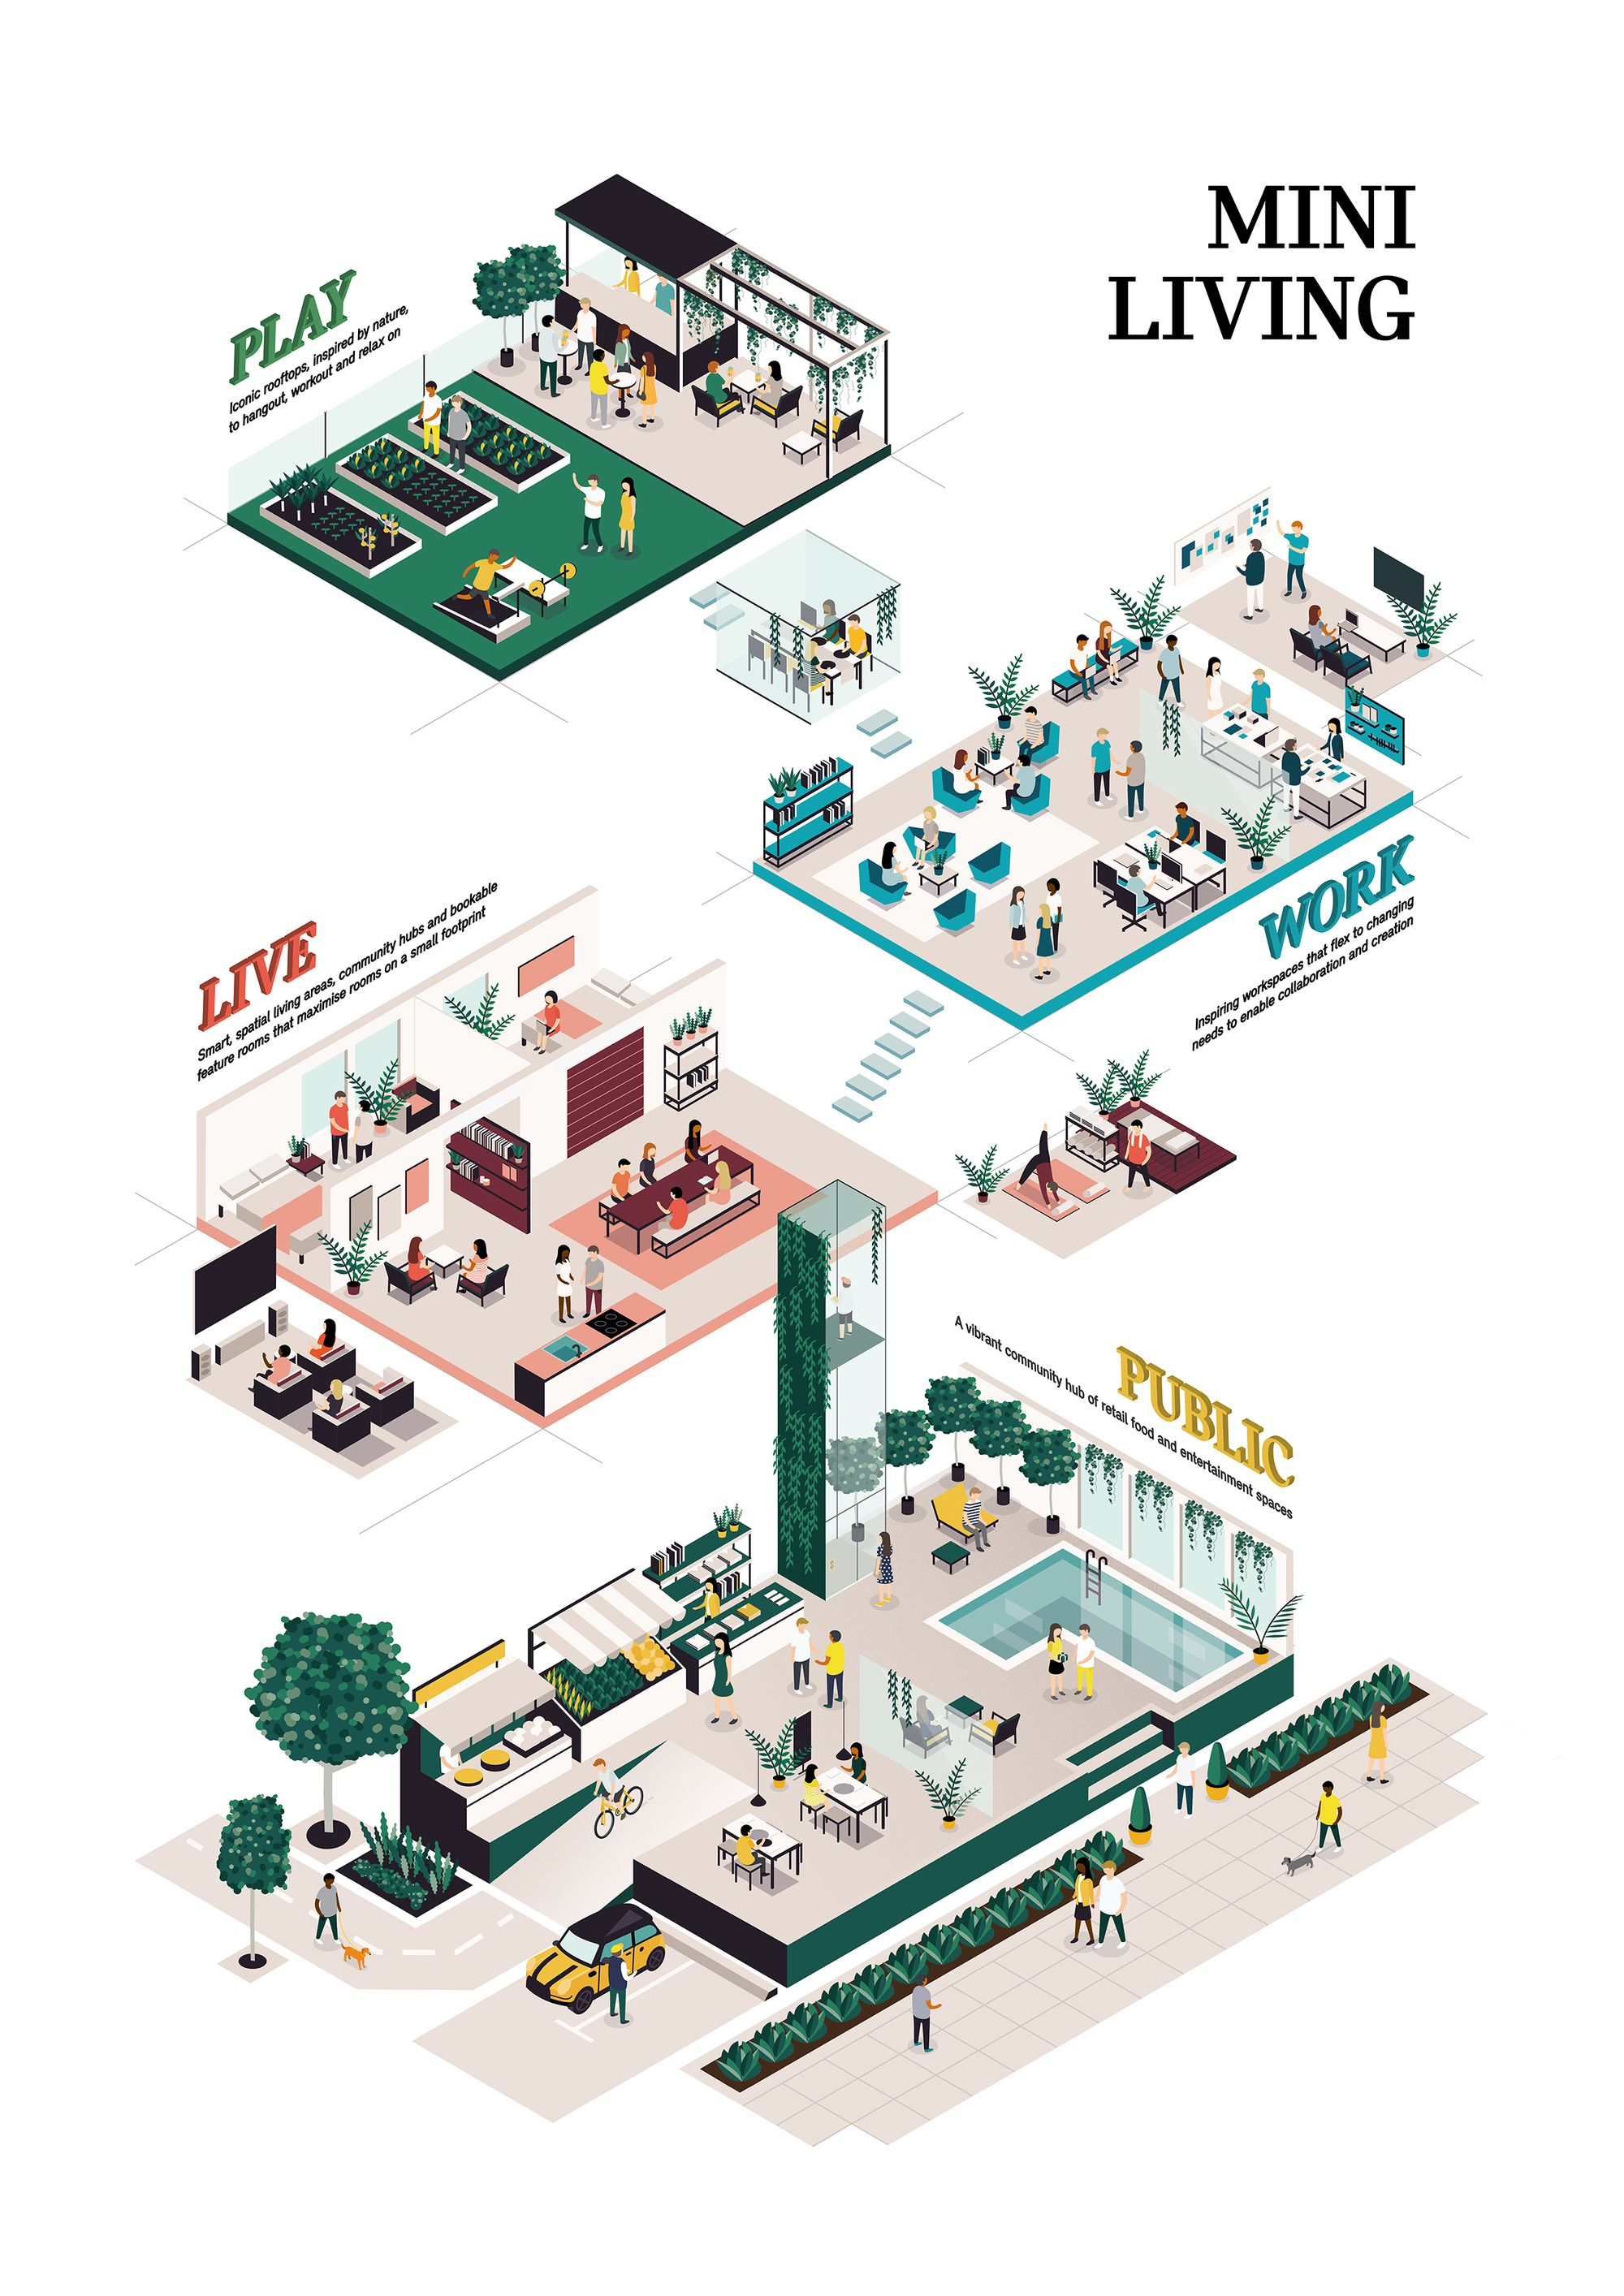 Gallery Of Mini Living S First Permanent Building Will Transform A Paint Factory Into A Co Living Hotspot In Shanghai 2 Architecture Concept Diagram Diagram Architecture Concept Architecture